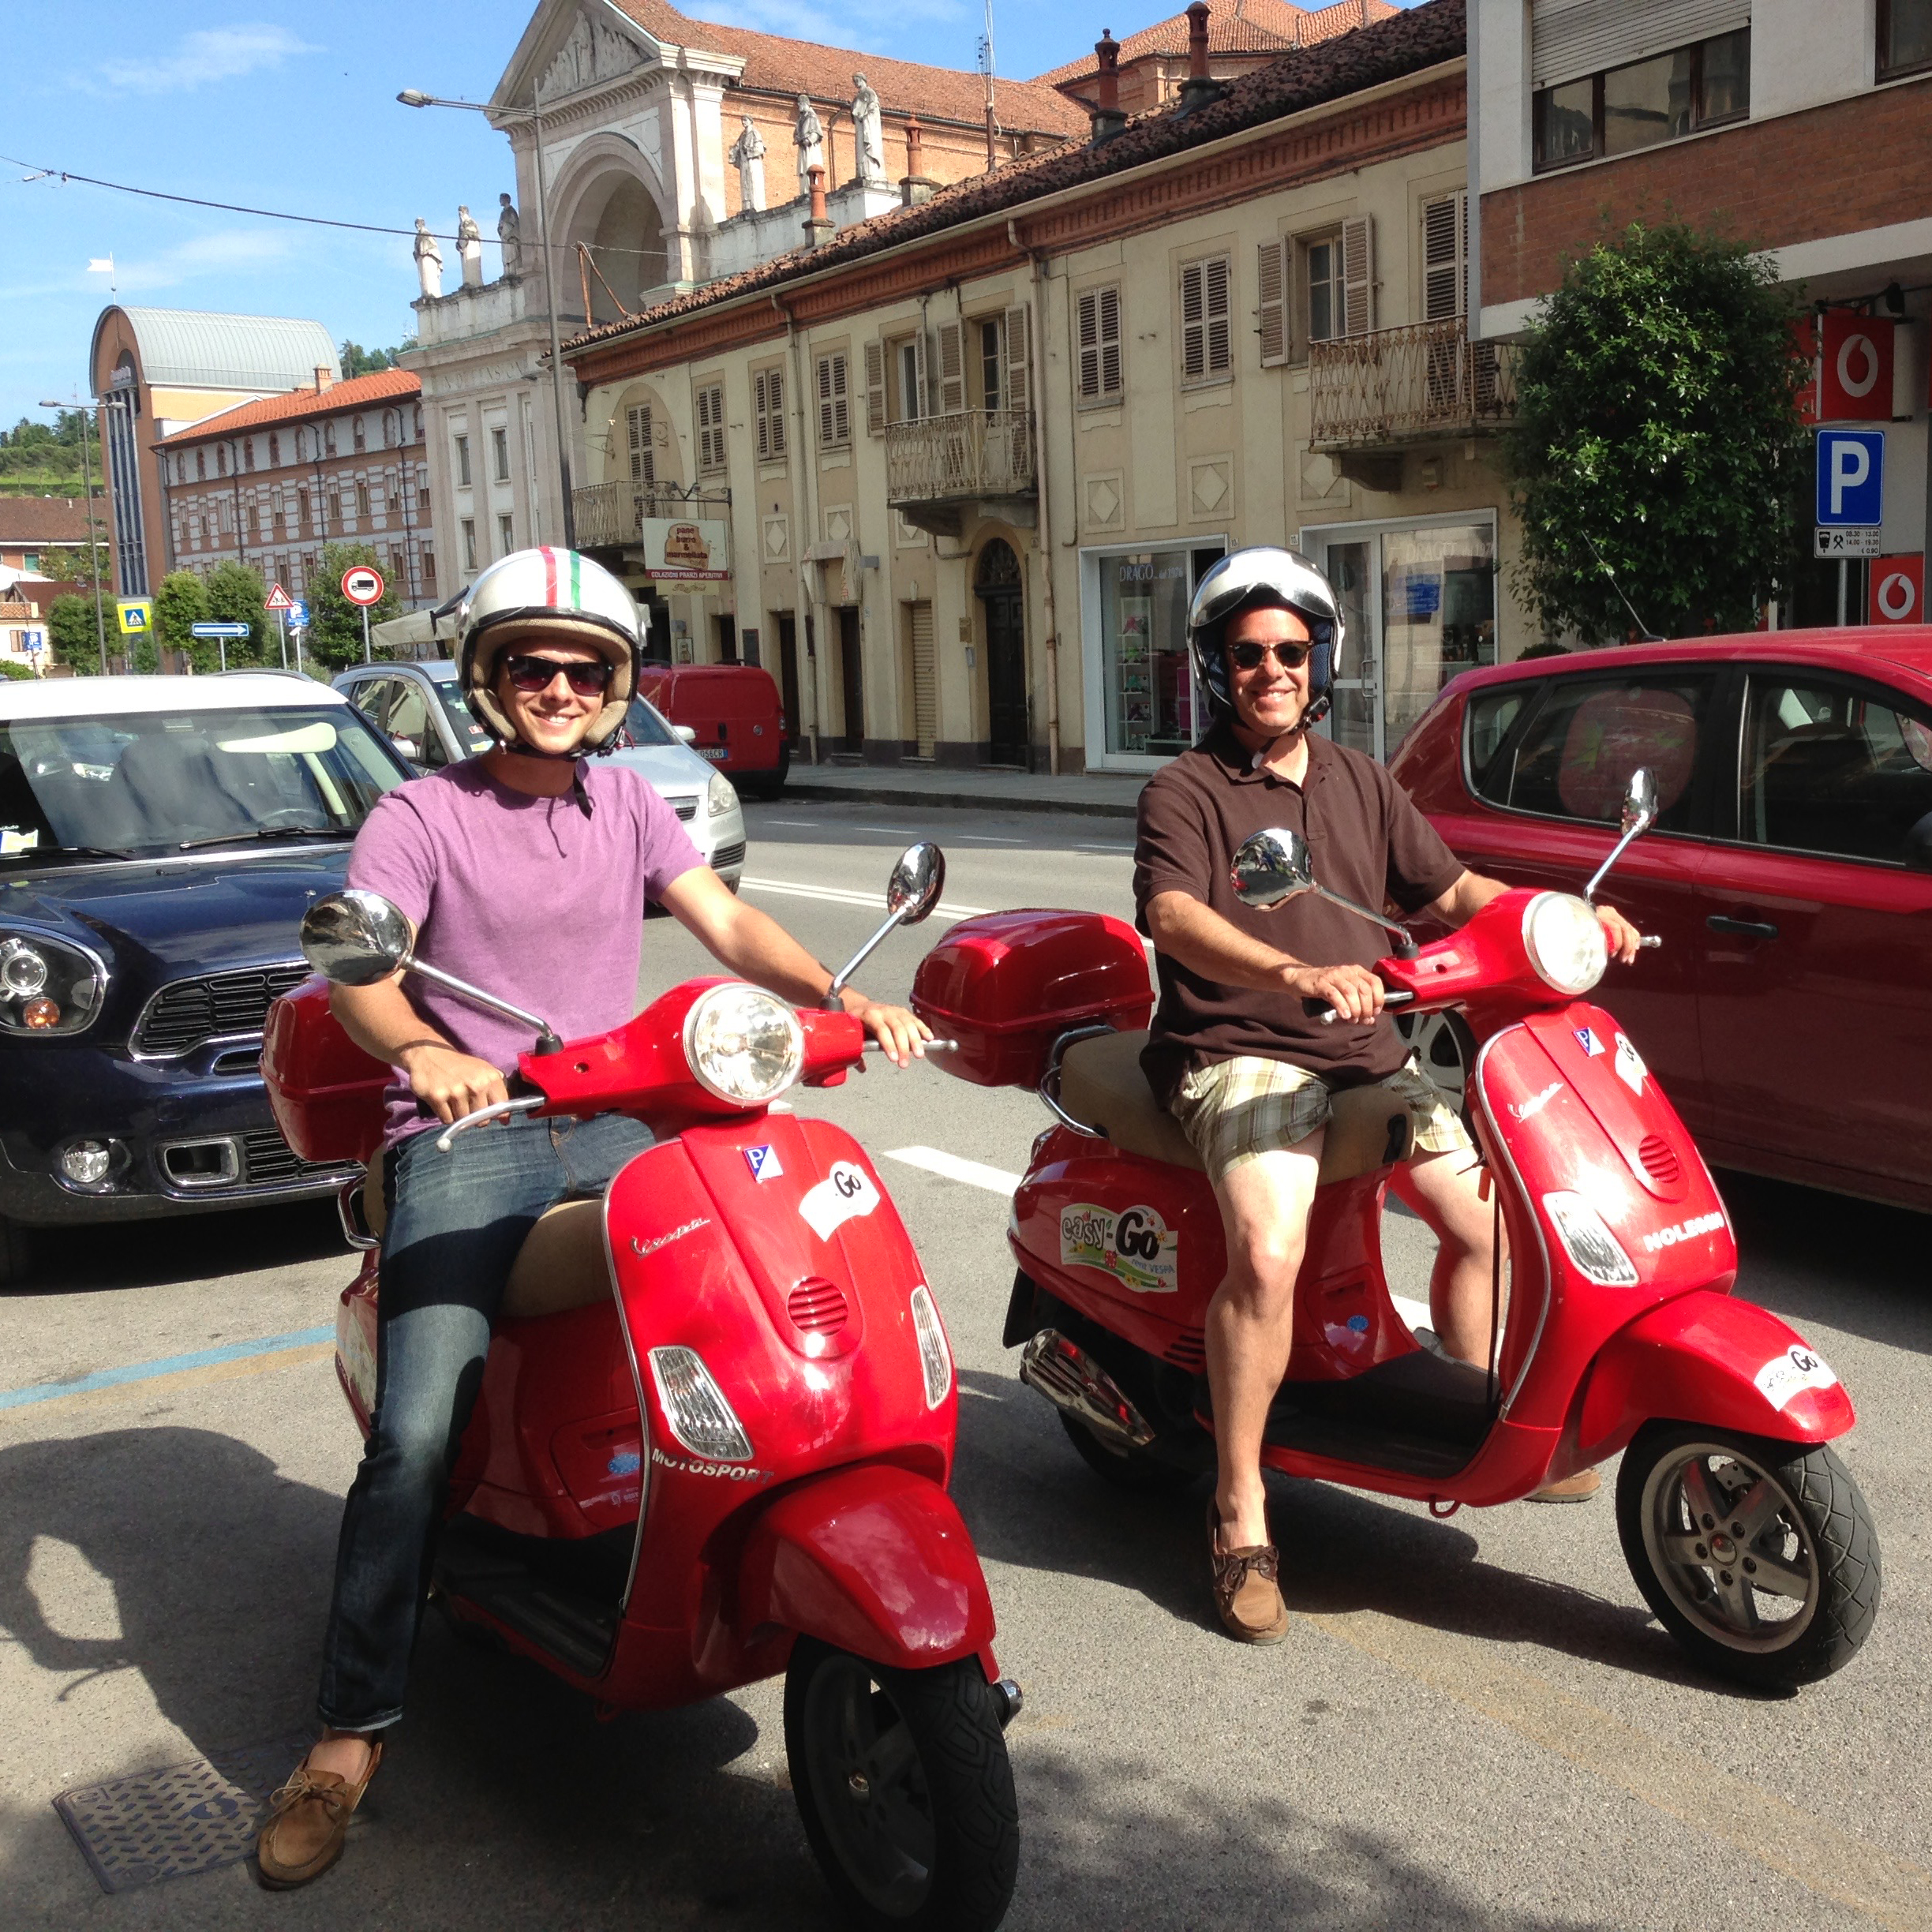 Vespa excursion | Small group tour of Piedmont